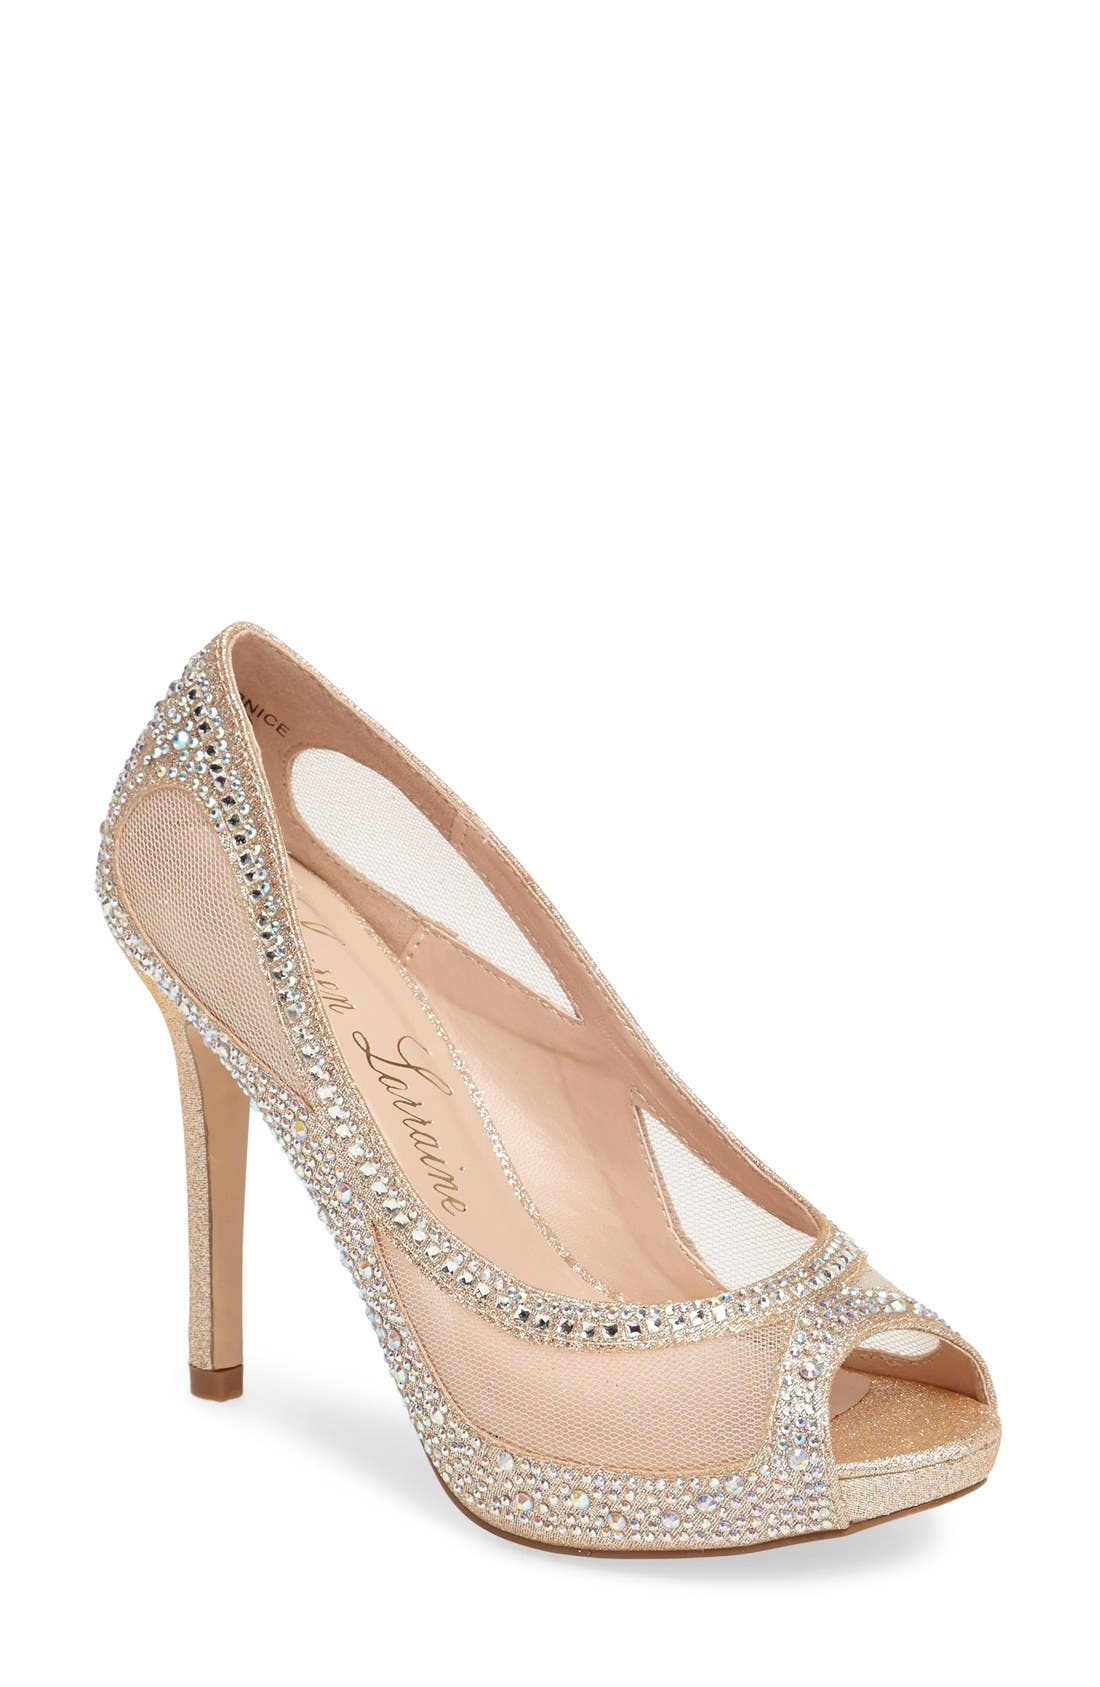 Lauren Lorraine Bernice Peep Toe Crystal Embellished Pump (Women)